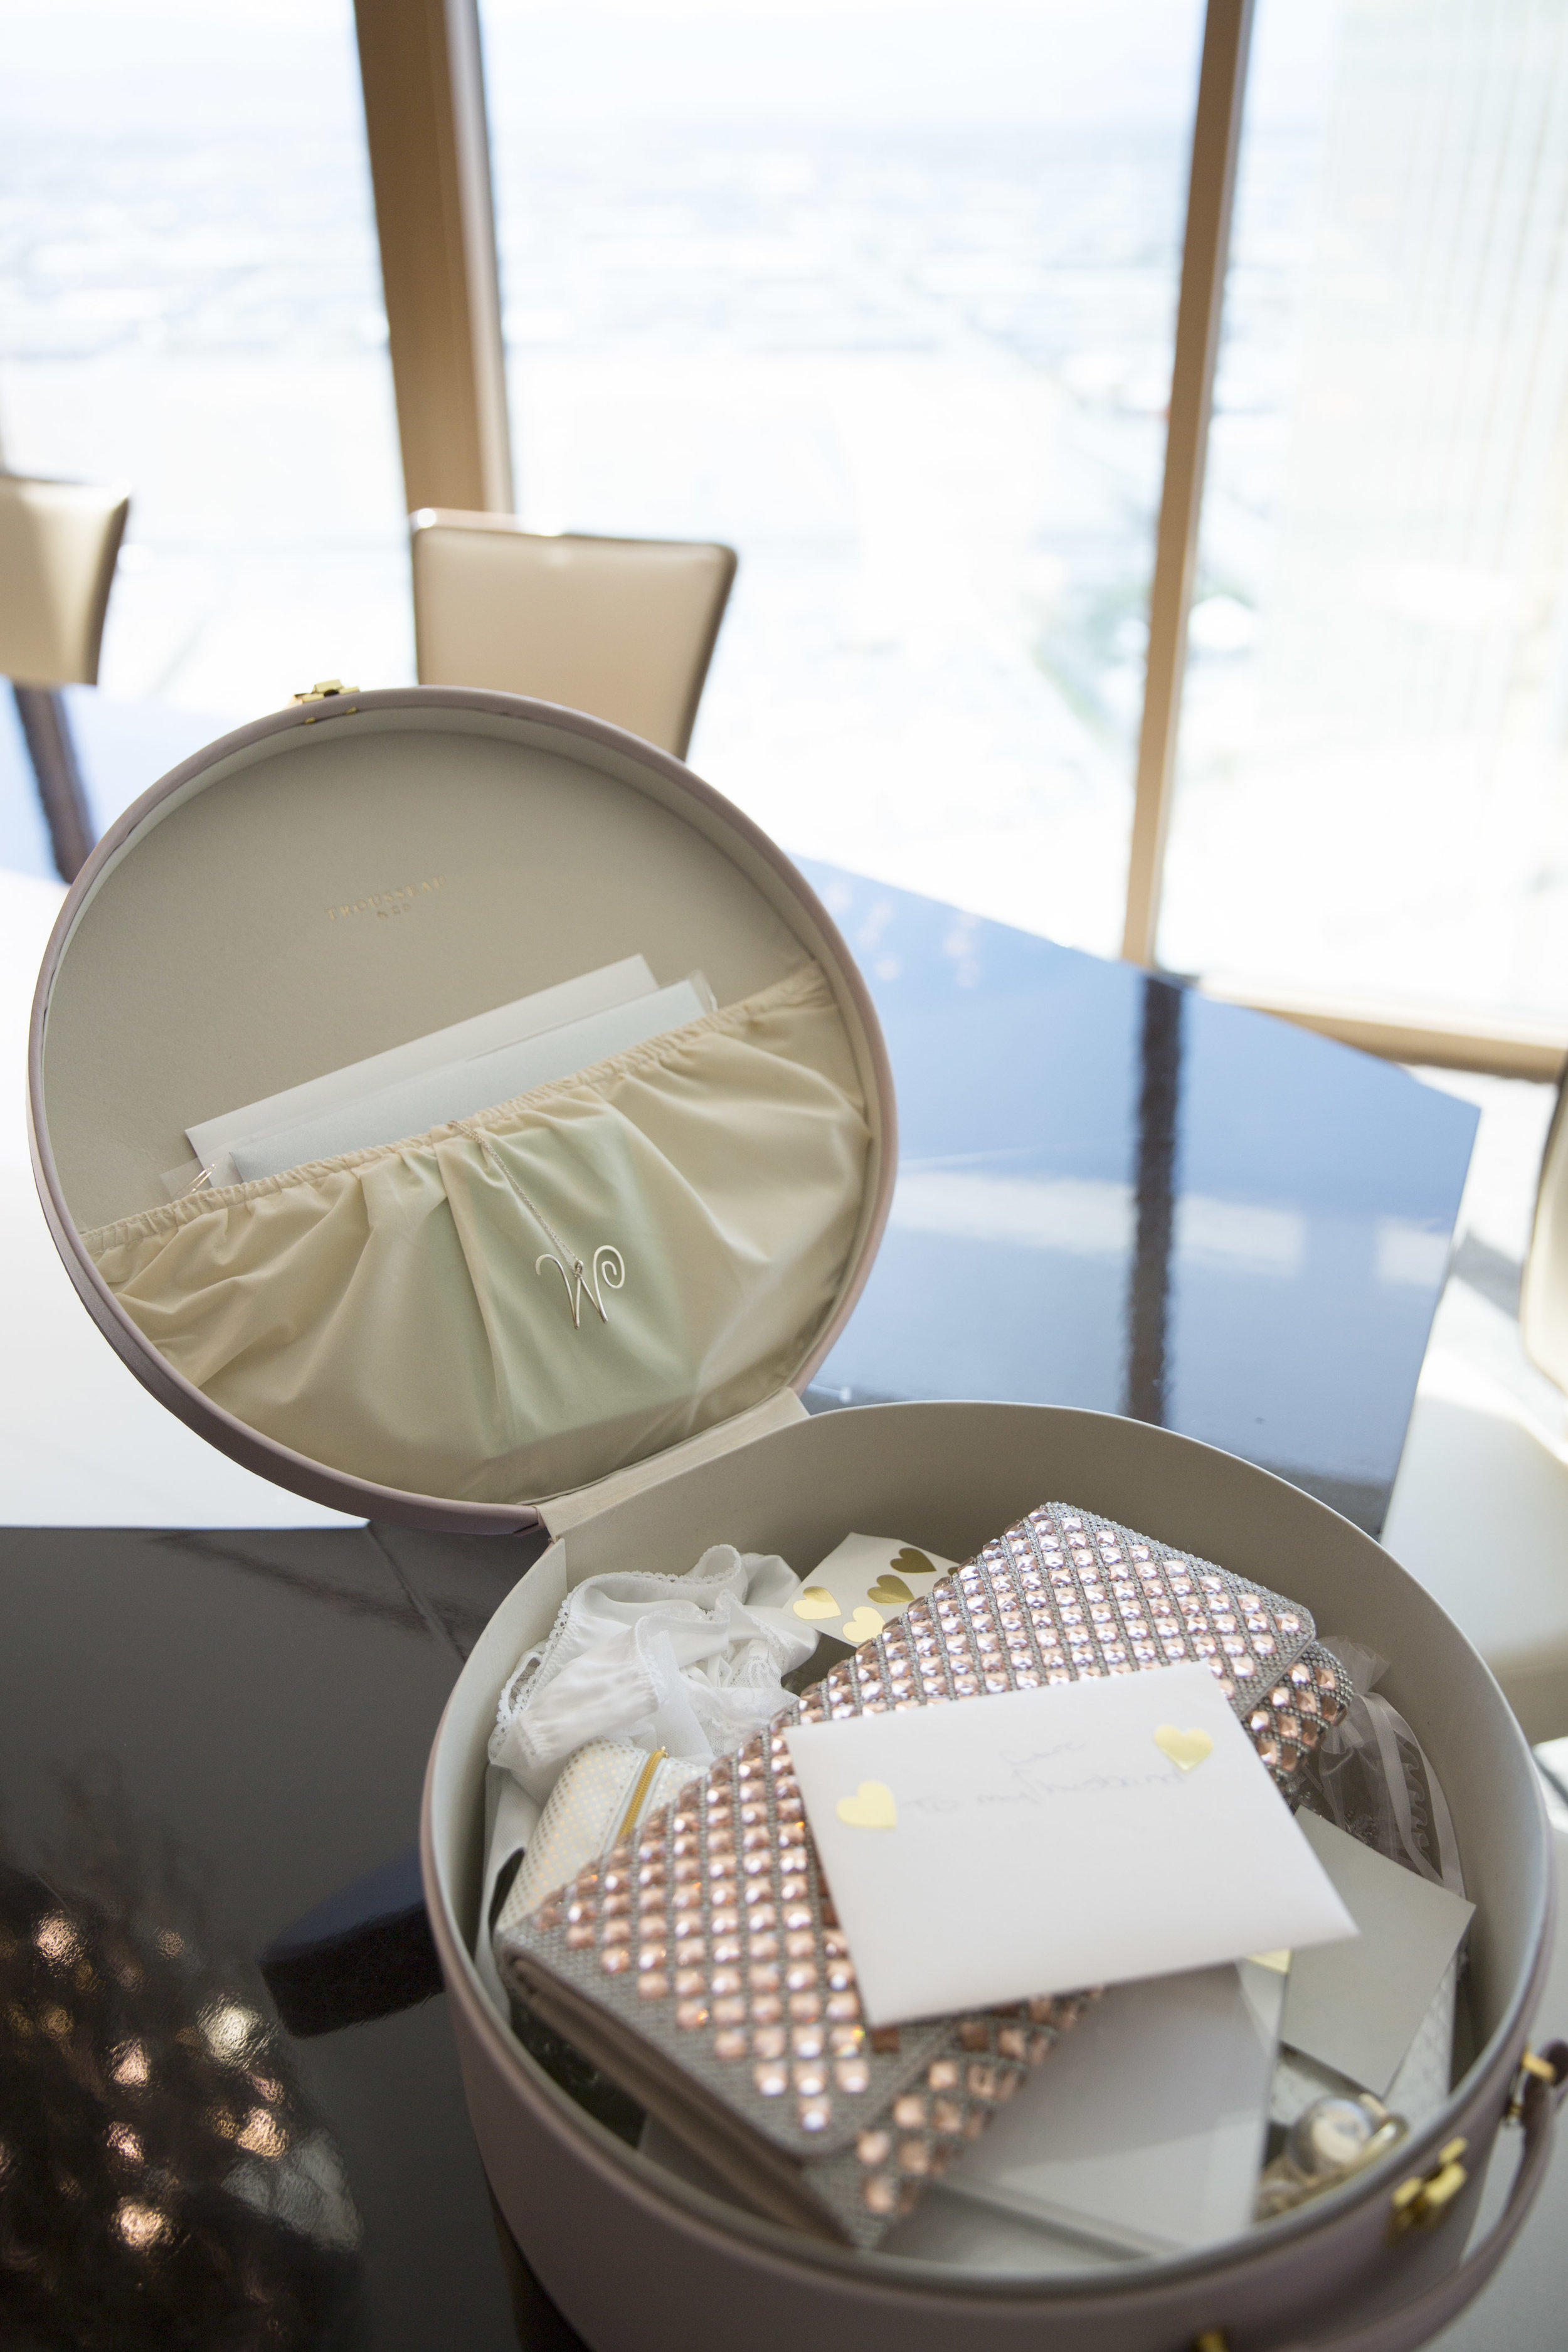 Trousseau Case filled with bridal clutch by Aldo, garters, and cards. Las Vegas Wedding Planner Andrea Eppolito | Florals & Decor by DBD Vegas | Image by AltF Photography.